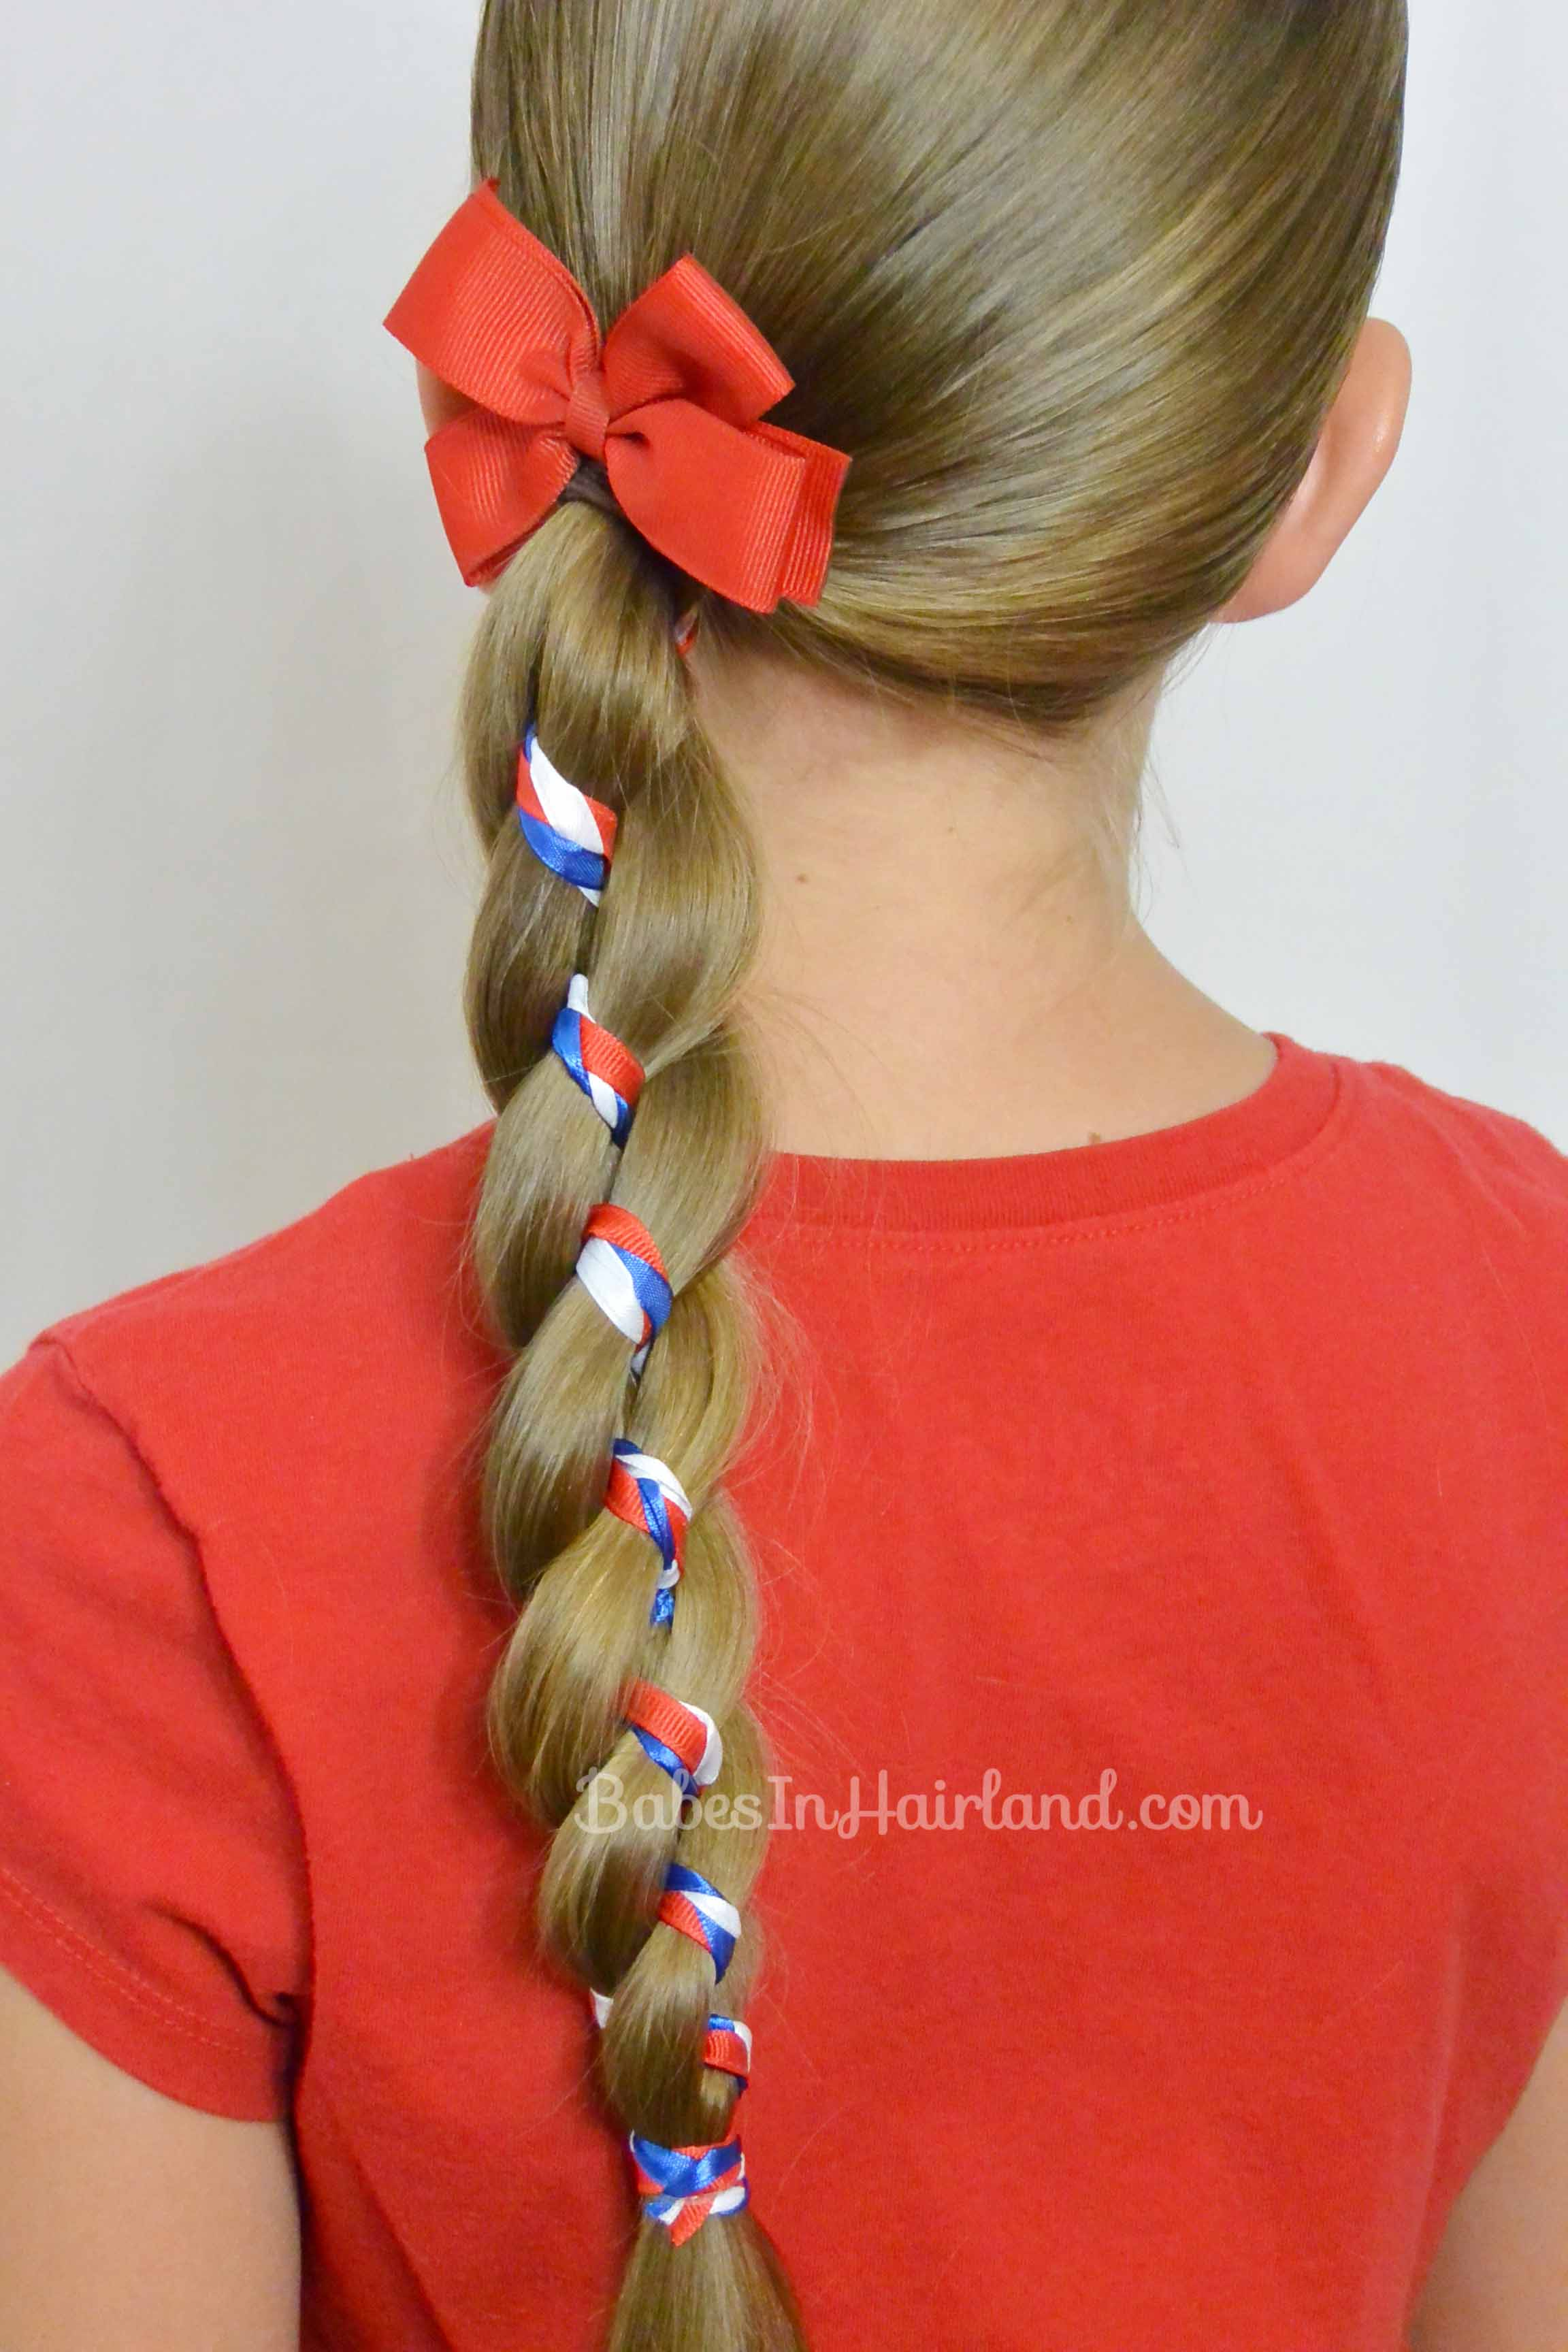 Ribbon Braid In A 4 Strand Braid 4th Of July Hairstyle